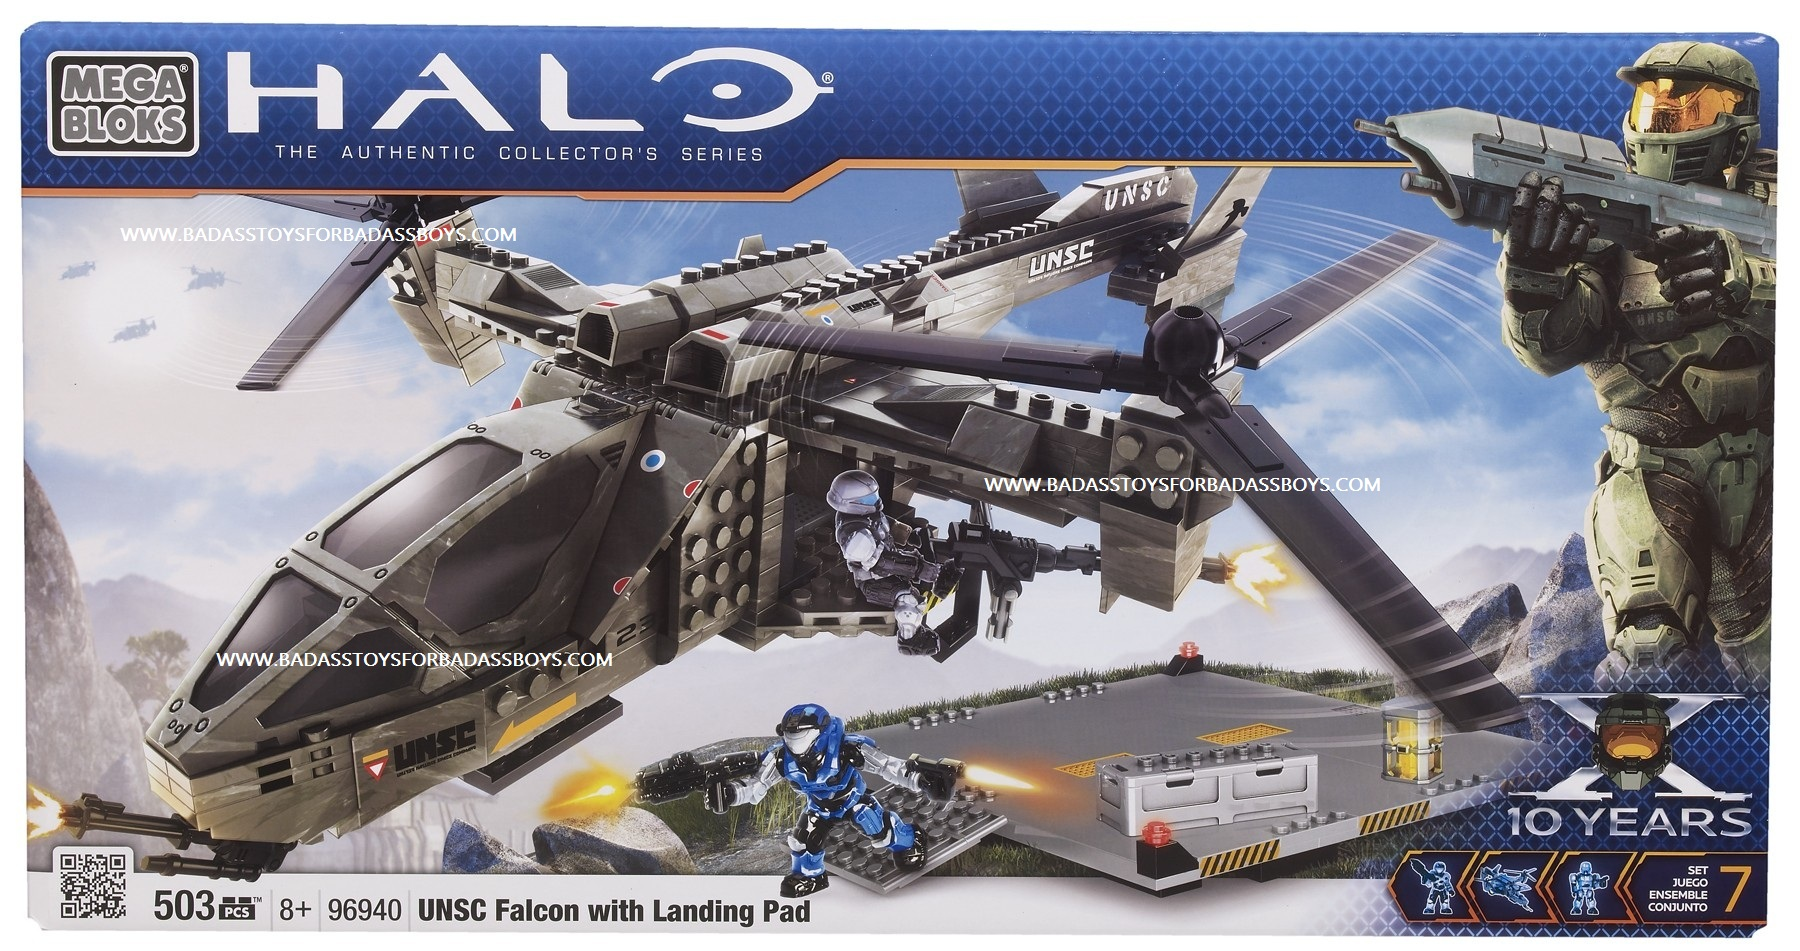 Halo Mega Bloks UNSC Falcon with landing pad officially licensed Halo Mega Bloks product at B.A. Toys.